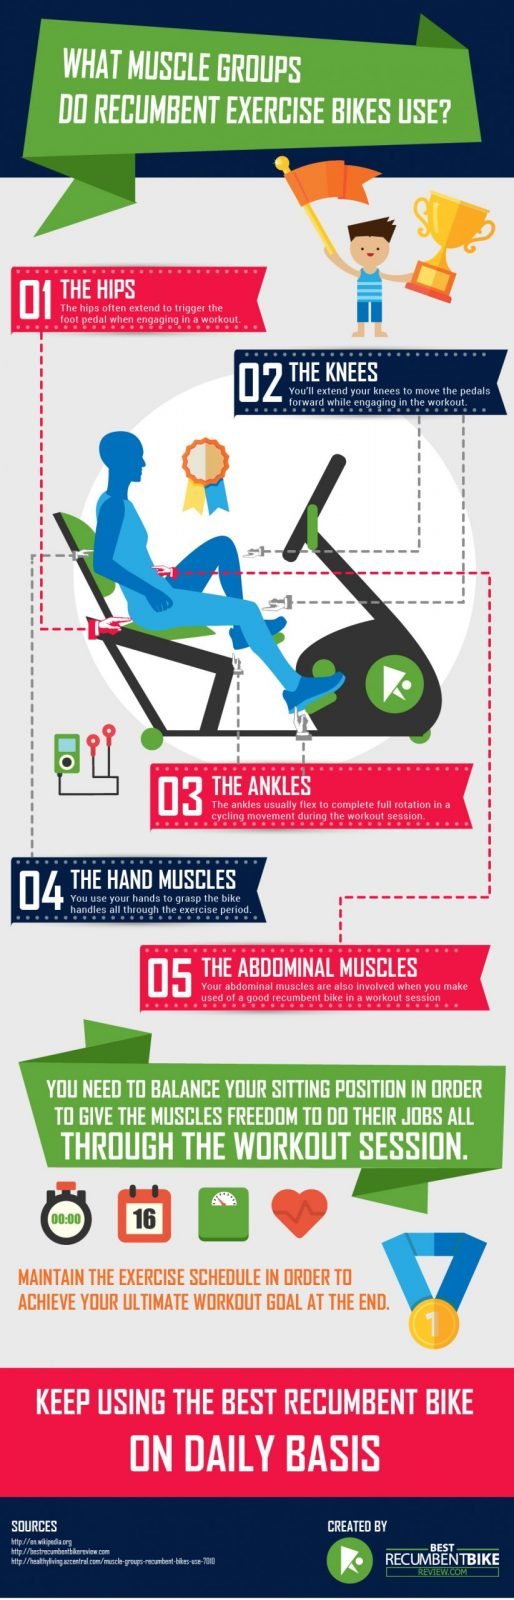 Infographic What Muscle Groups Do Recumbent Exercise Bikes Use scaled - Infographic - What Muscle Groups Do Recumbent Exercise Bikes Use?